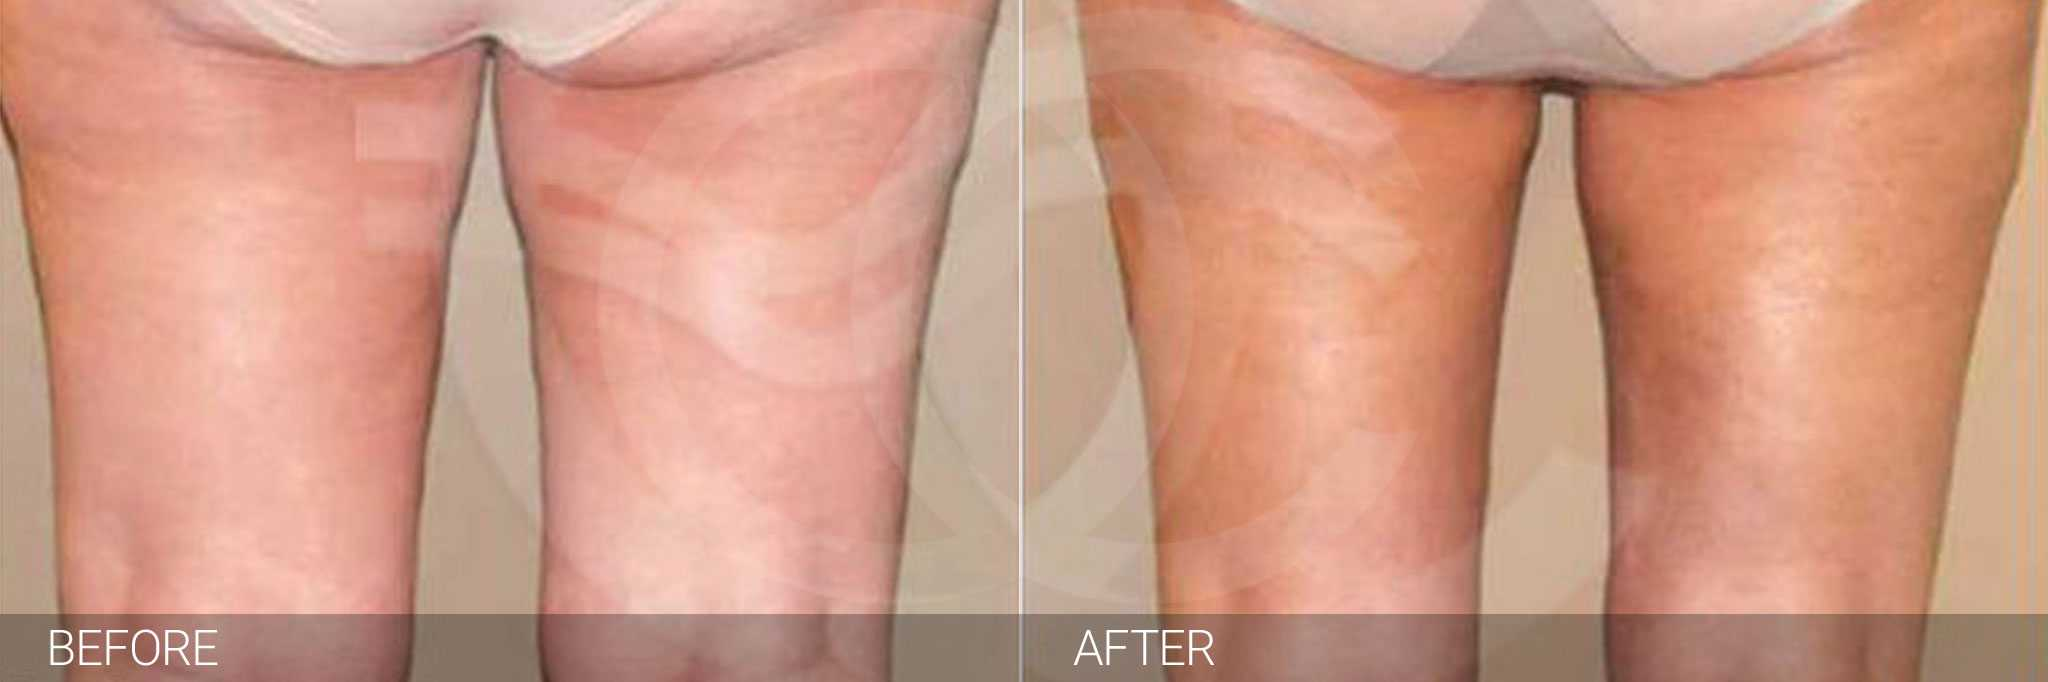 Thigh Lift and Liposculpture ante/post-op III